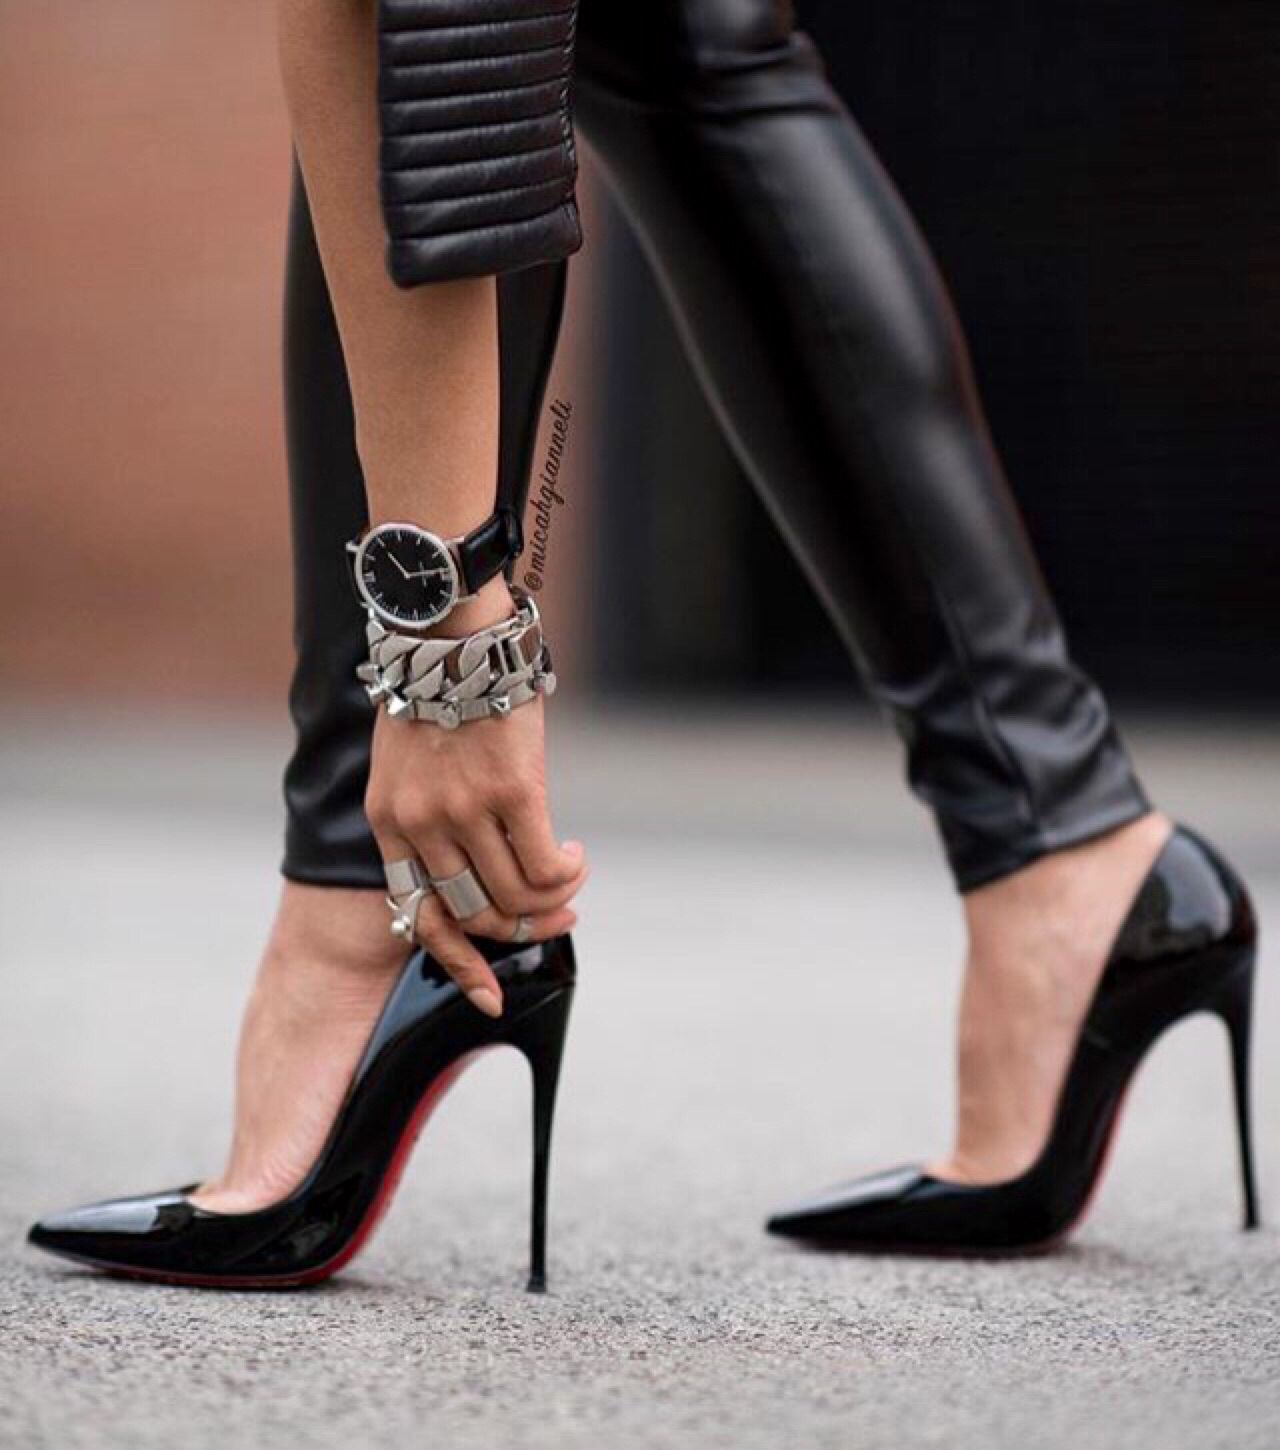 Christian Louboutin Pointed Toe Stiletto Heels. Tacchi Close-Up #Shoes # Heels #